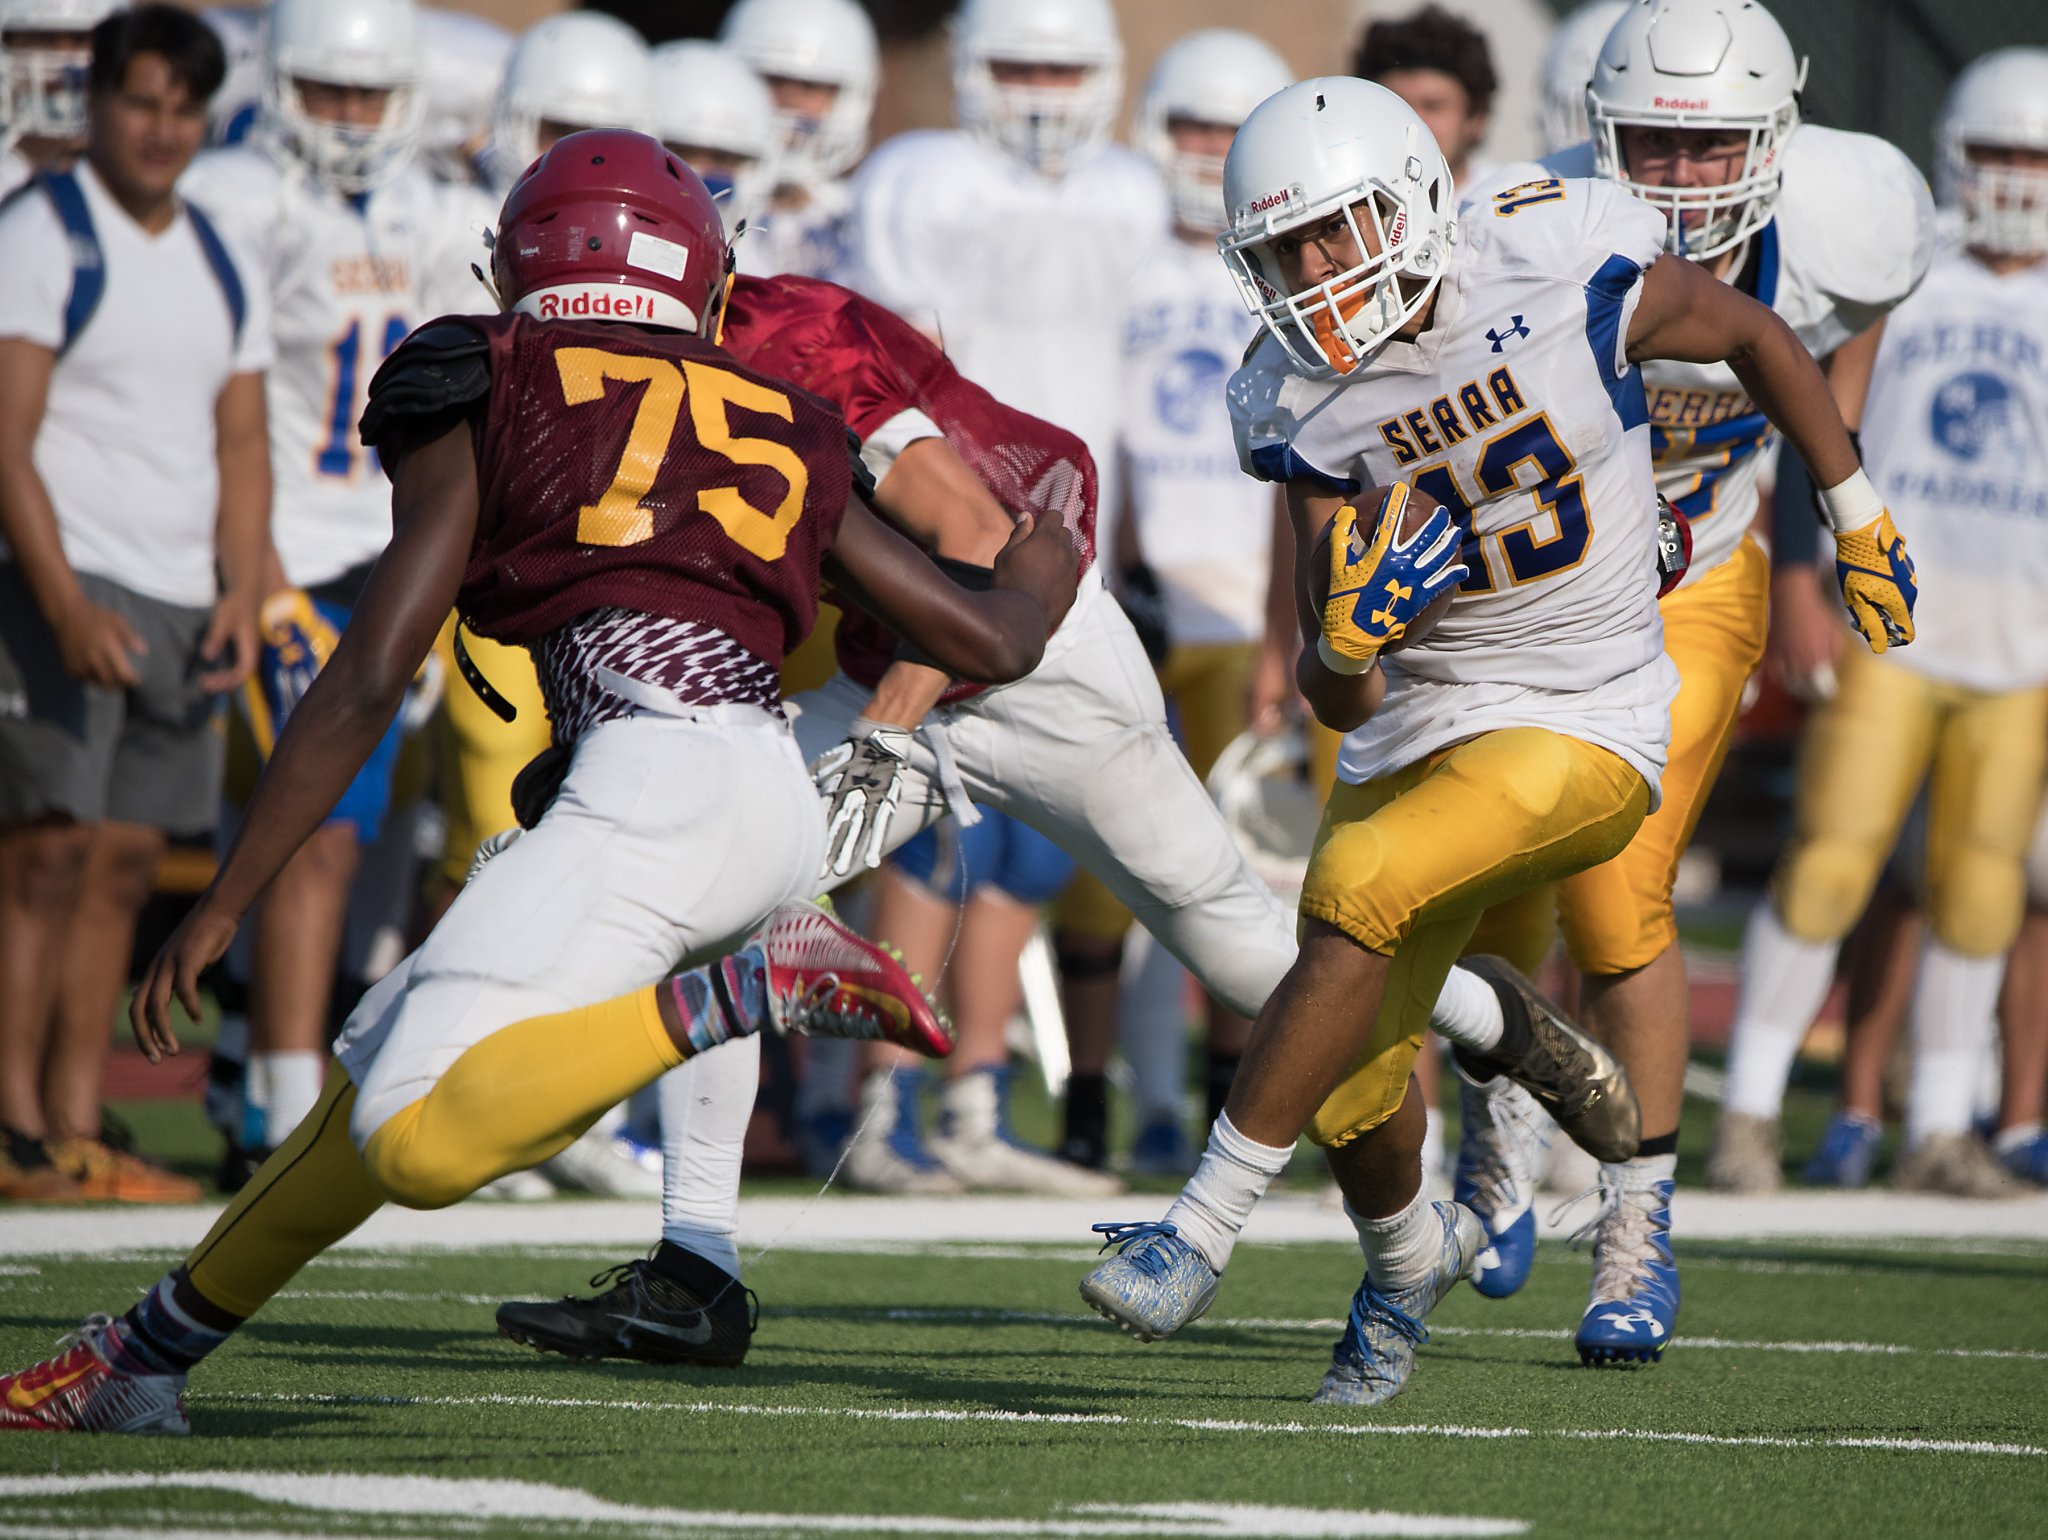 prep football teams showcase talent in scrimmages sfgate